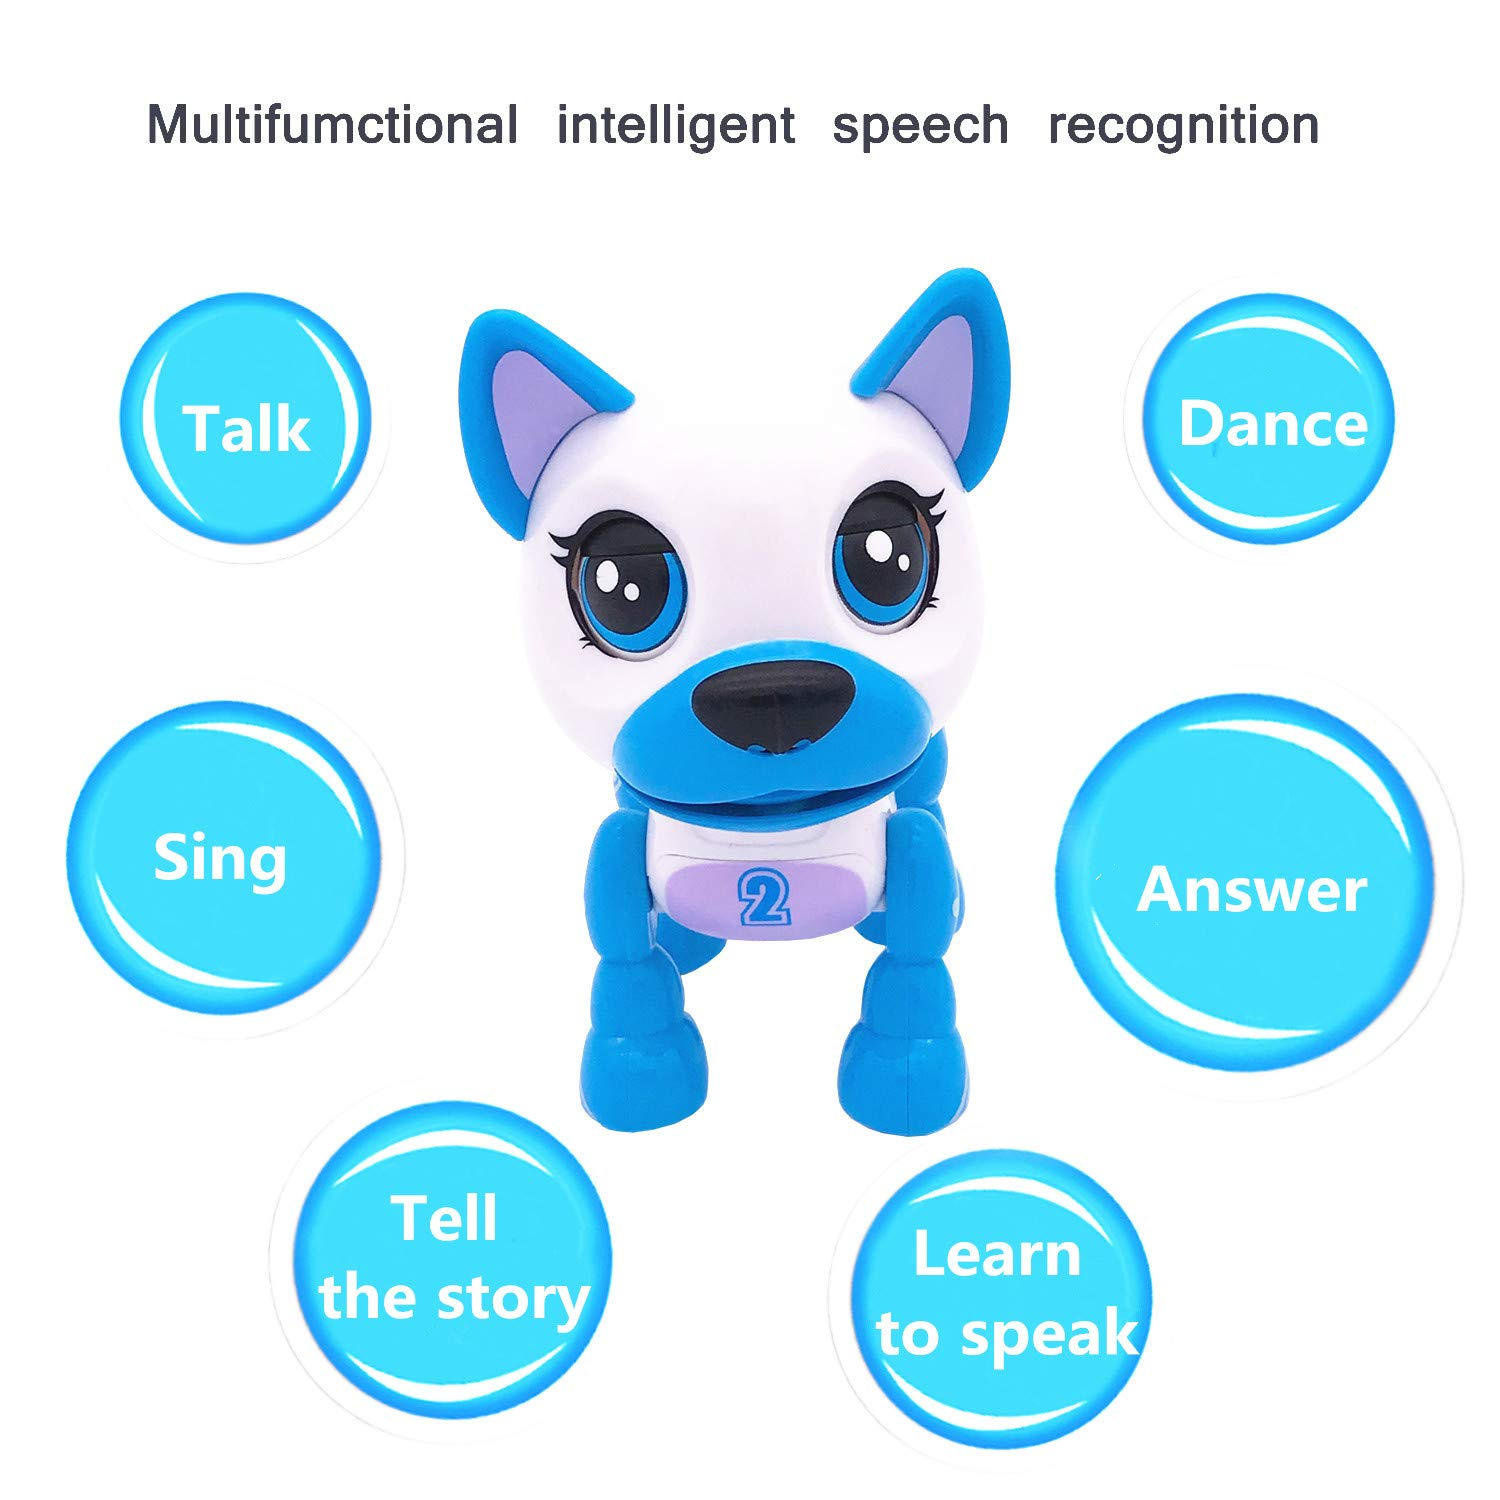 SoundOriginal Electronic Intelligent Pocket Pet Dog Interactive Puppy - Robot Dog Popular Toys Smart Pet Toy for Age 3 4 5 6 7 8 9 10 Year Old Boys Girls and Kids Gifts, Speech Recognition Dog (white) by SoundOriginal (Image #3)